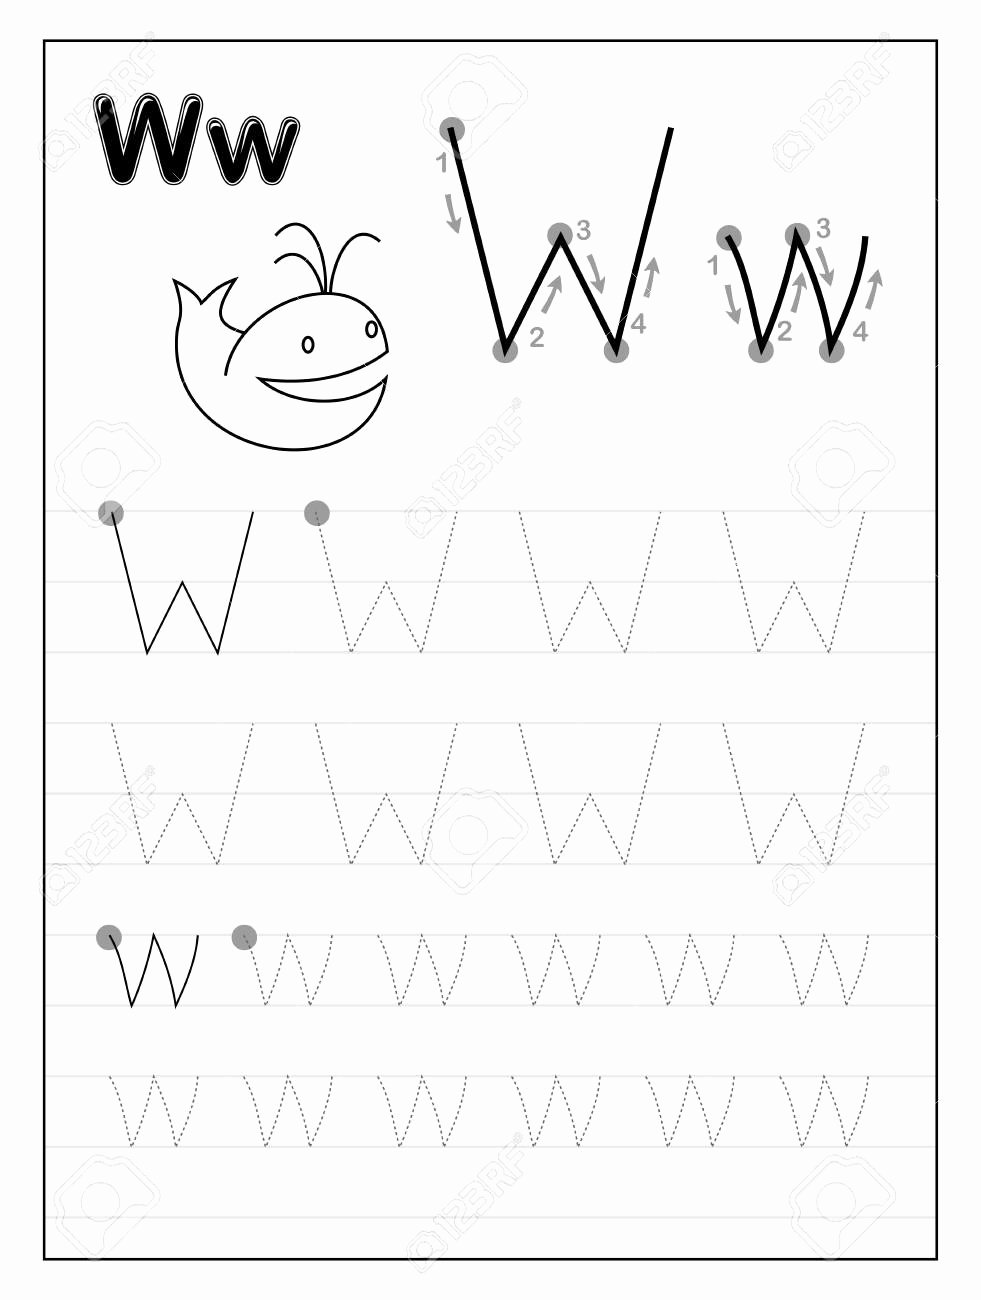 Letter W Worksheets for Preschoolers Free Worksheet Dotted Alphabet Worksheets Worksheet Ideas